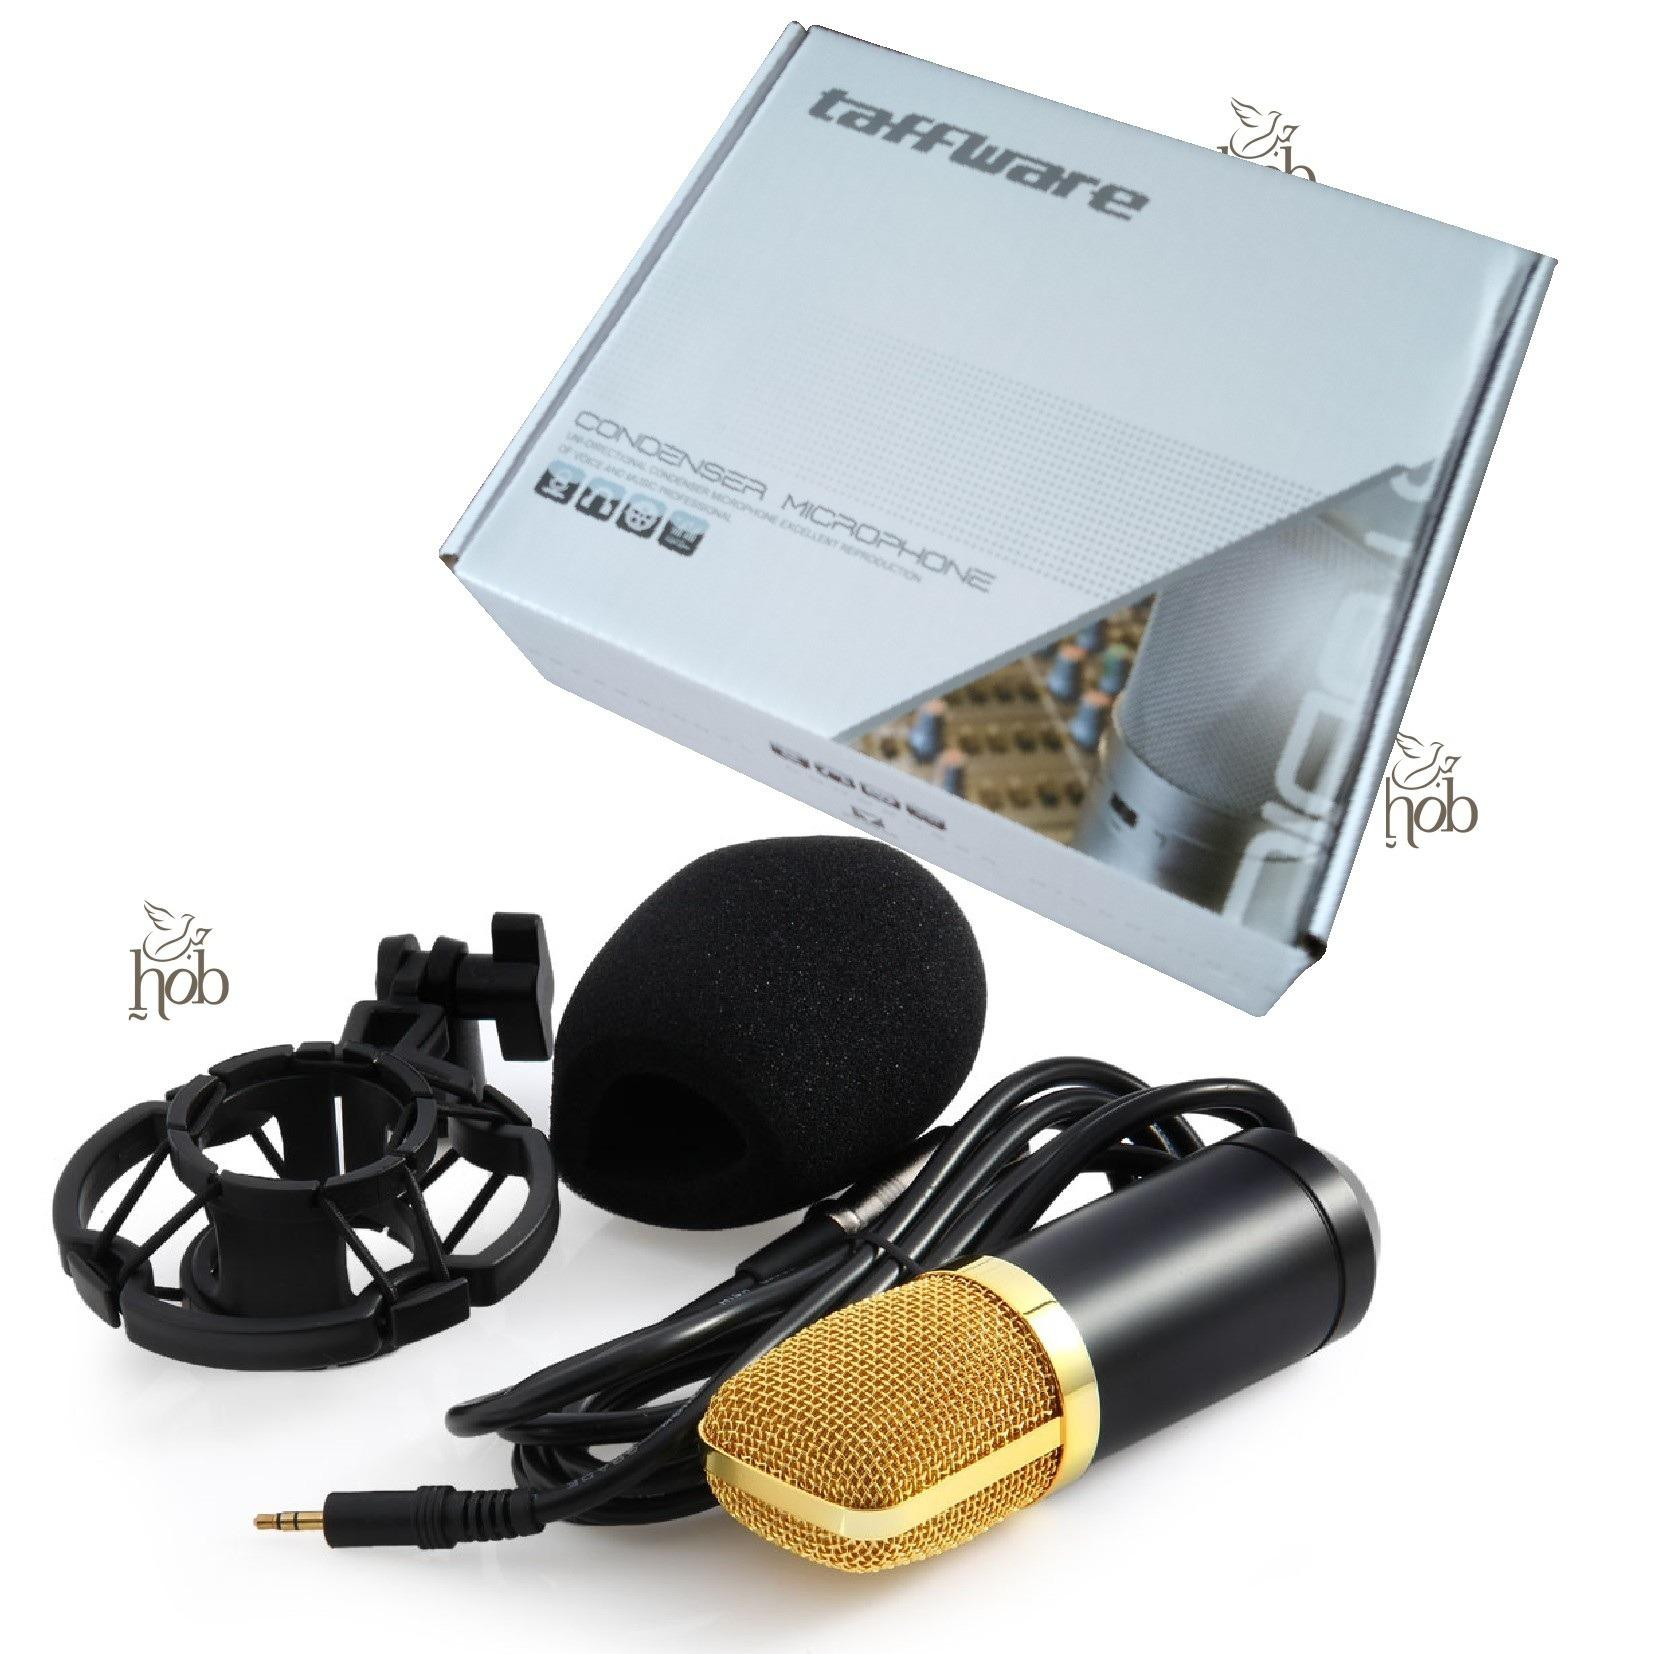 Jual Bm 700 Microphone Mic With Shock Proof Mount Condenser Studio Gold Grosir